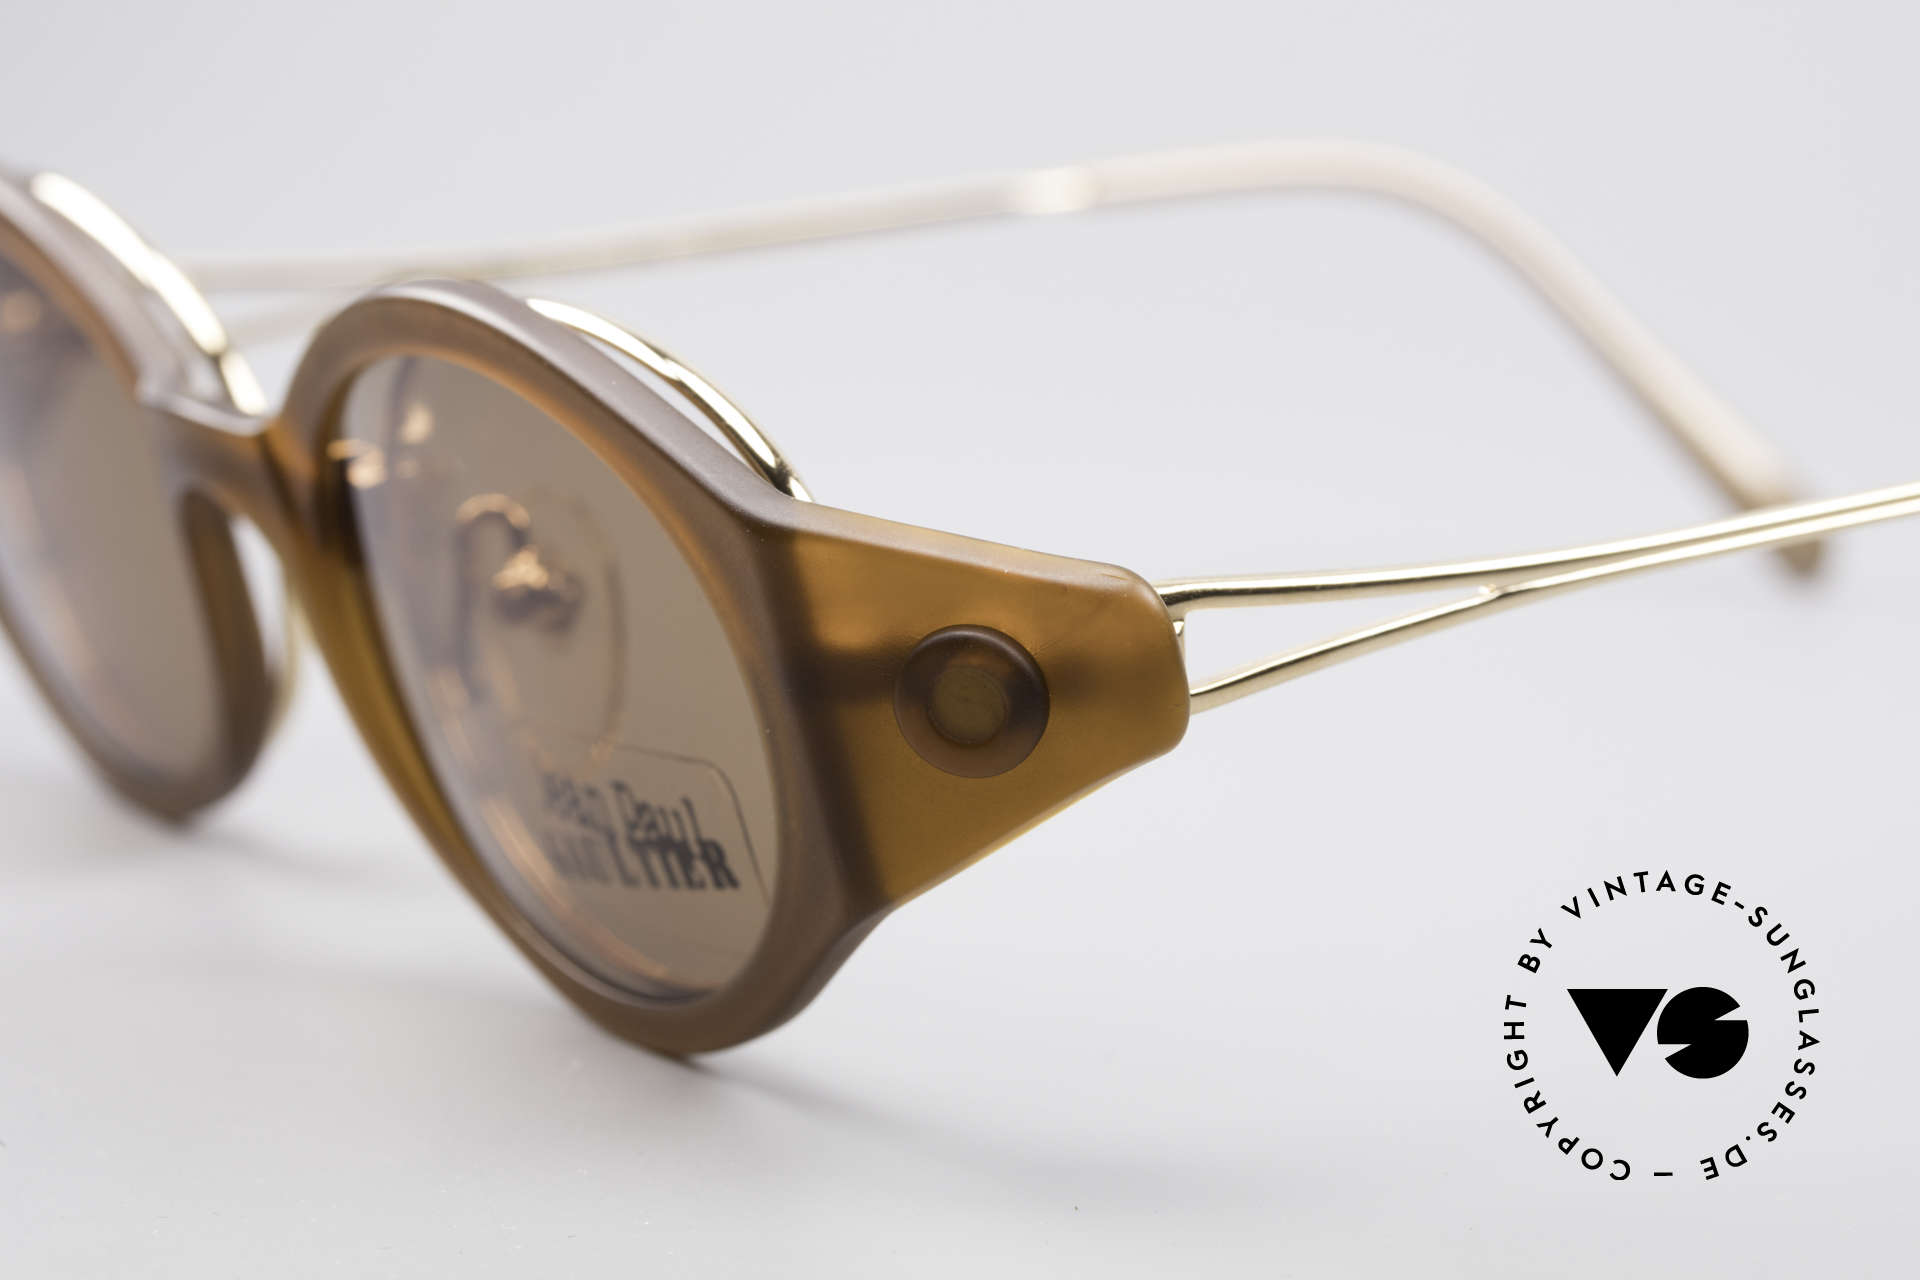 Jean Paul Gaultier 56-7202 Oval Frame With Sun Clip, classic oval metal frame with prominent plastic clip, Made for Men and Women